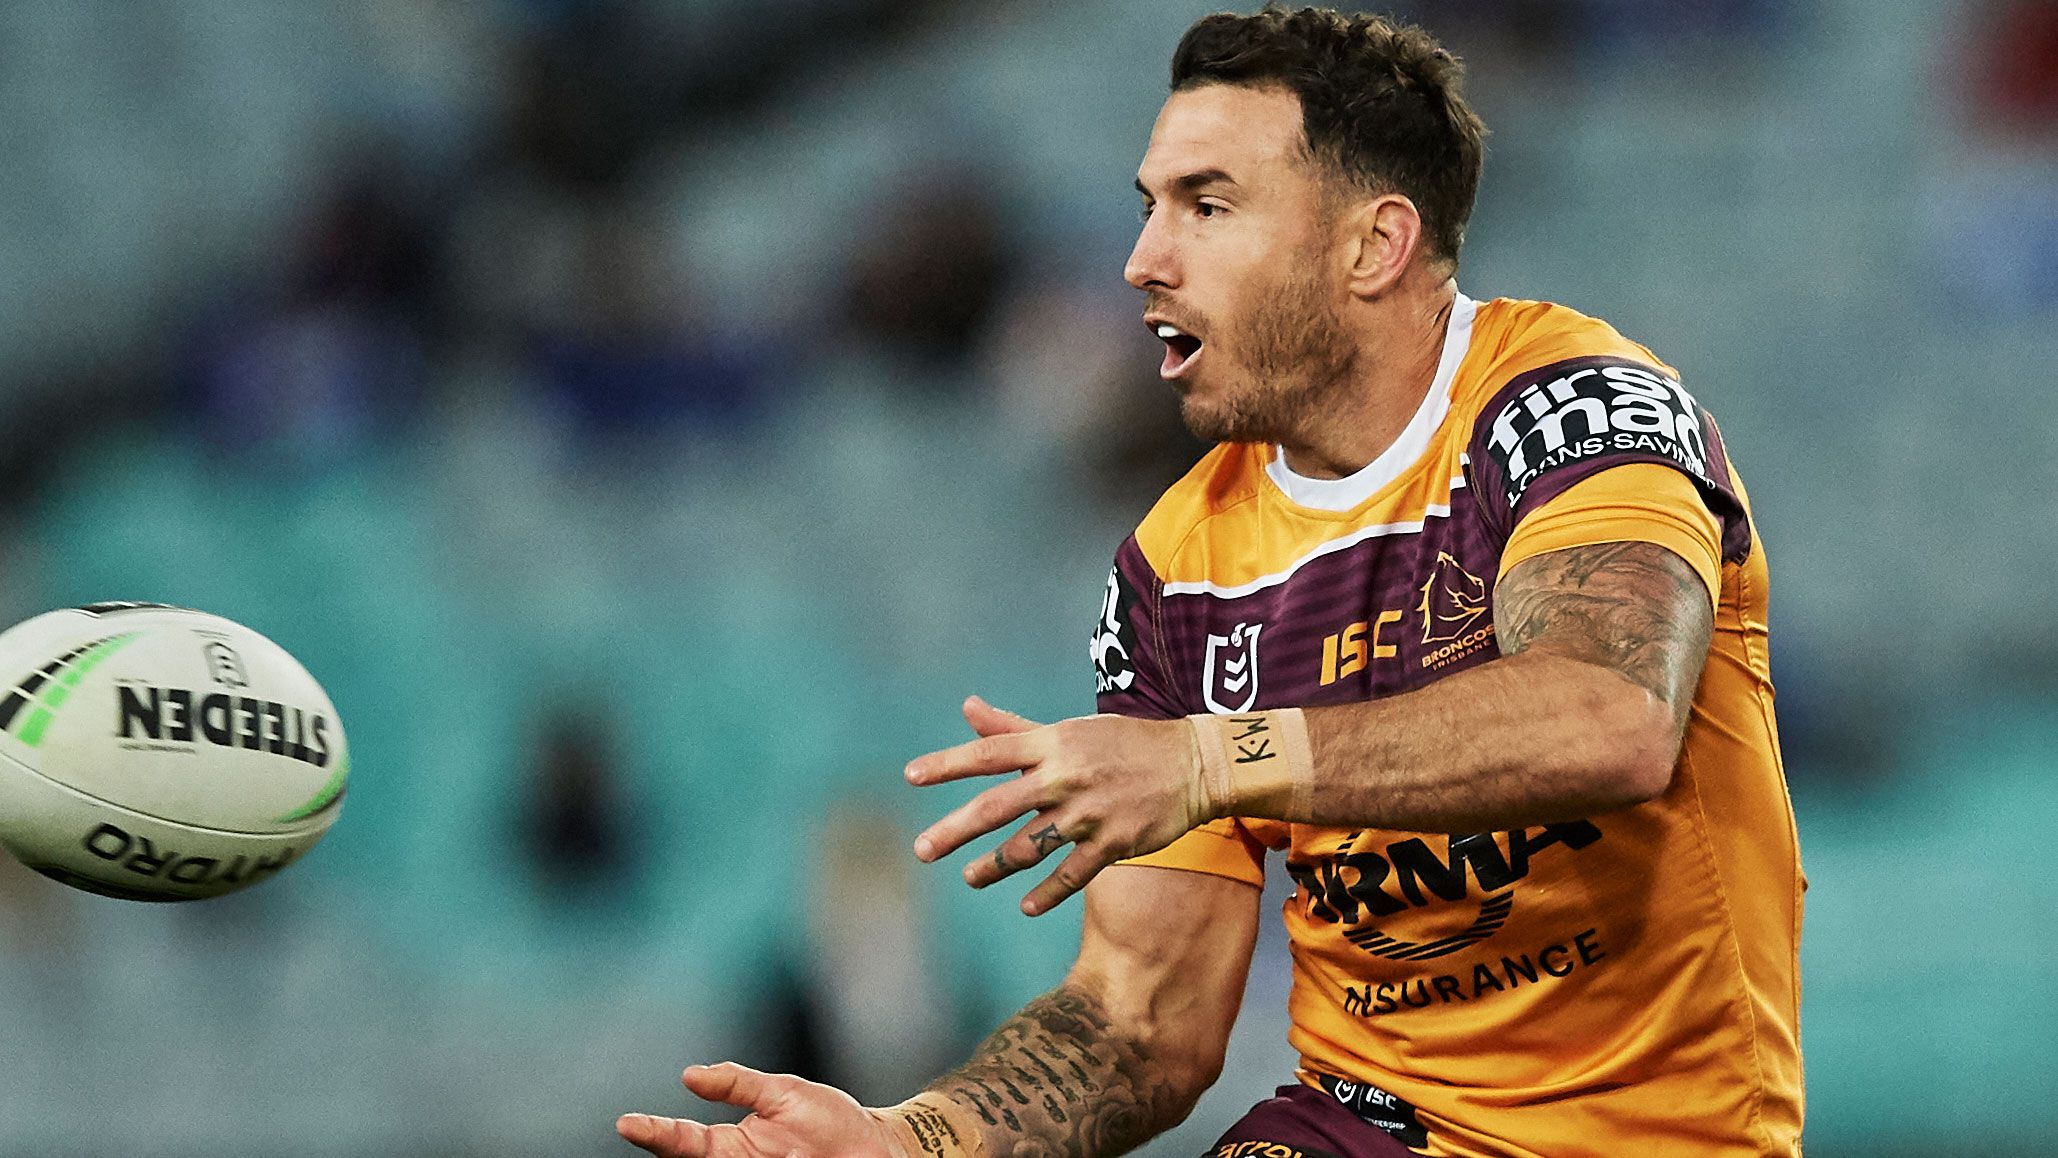 Darius Boyd has had an up and down season for the Broncos.